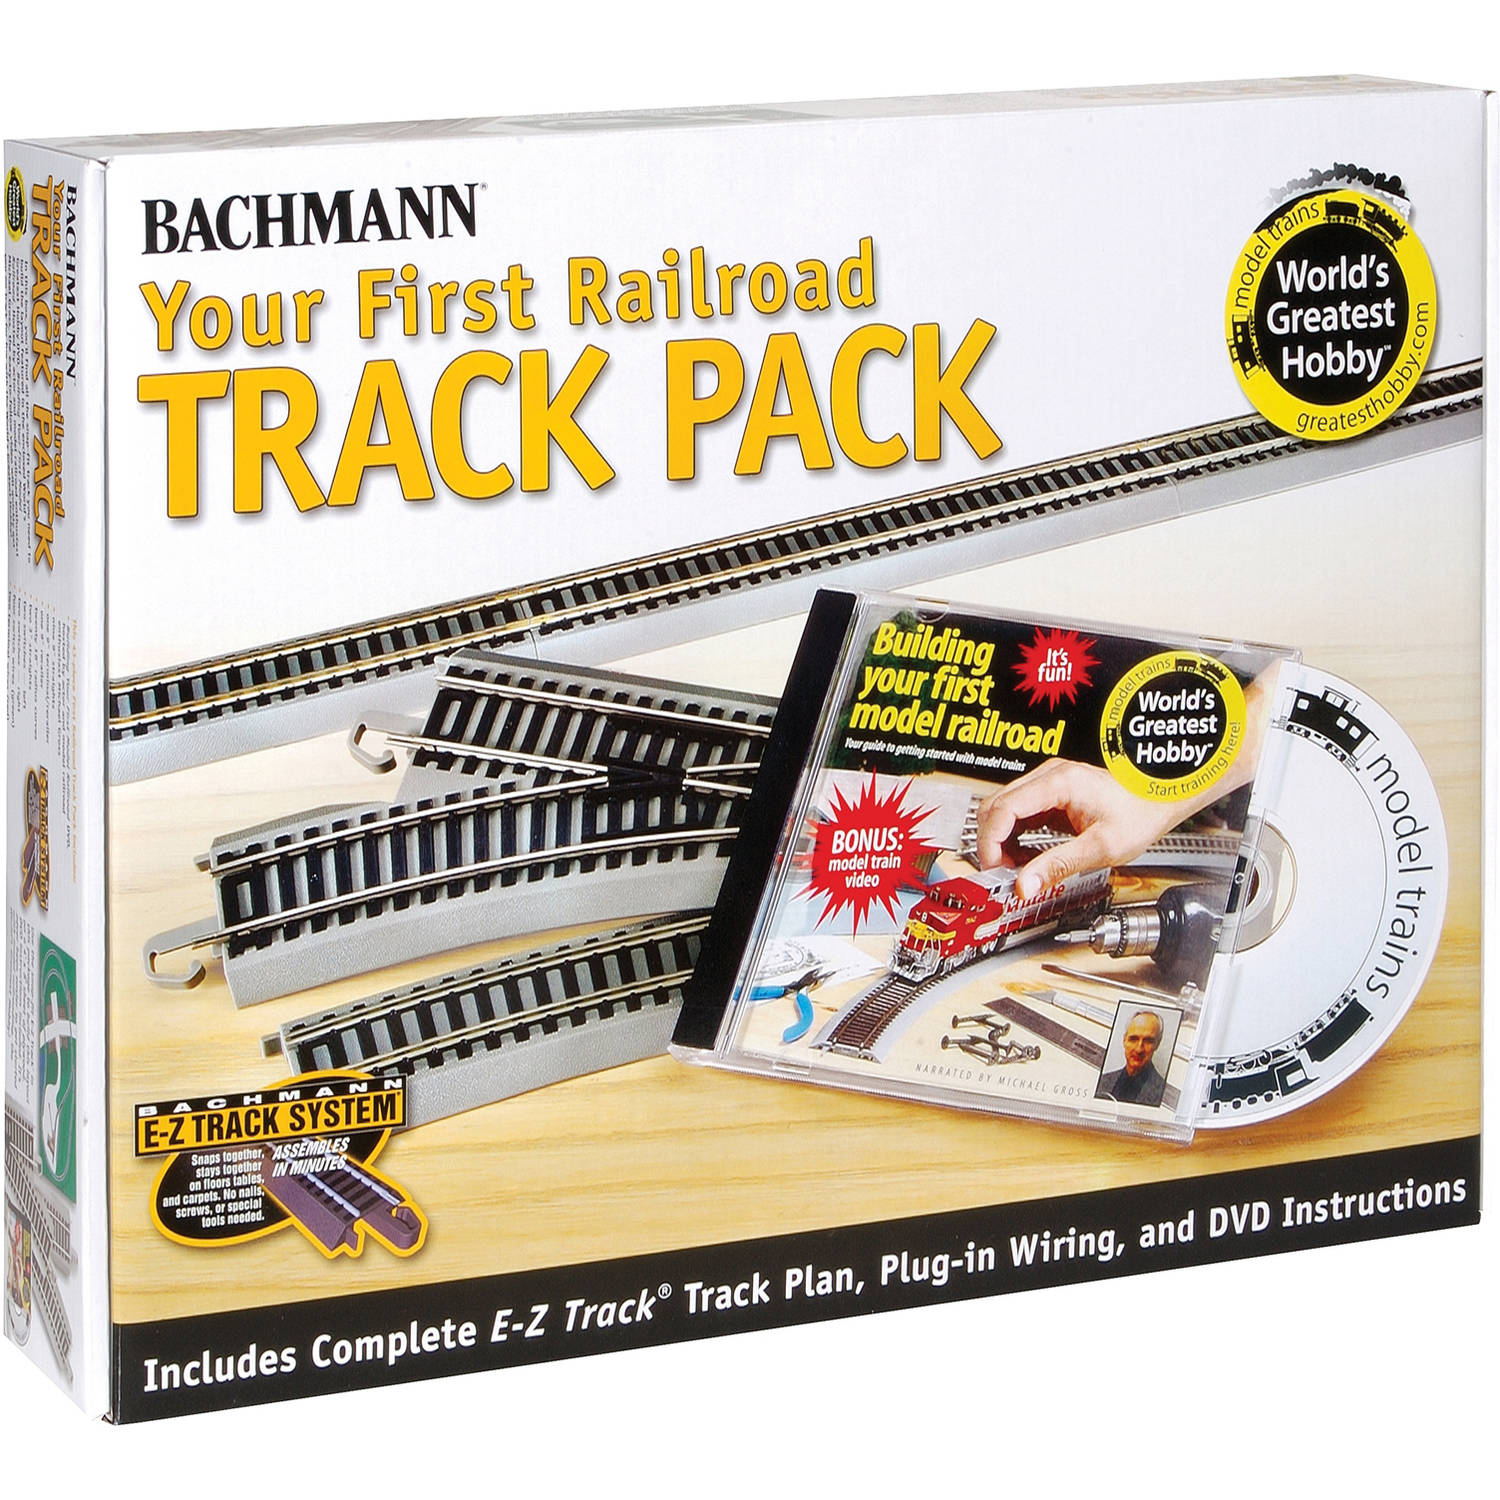 Bachmann Trains Nickel Silver World'S Greatest Hobby First Railroad Track Pack, HO Scale by Bachmann Trains